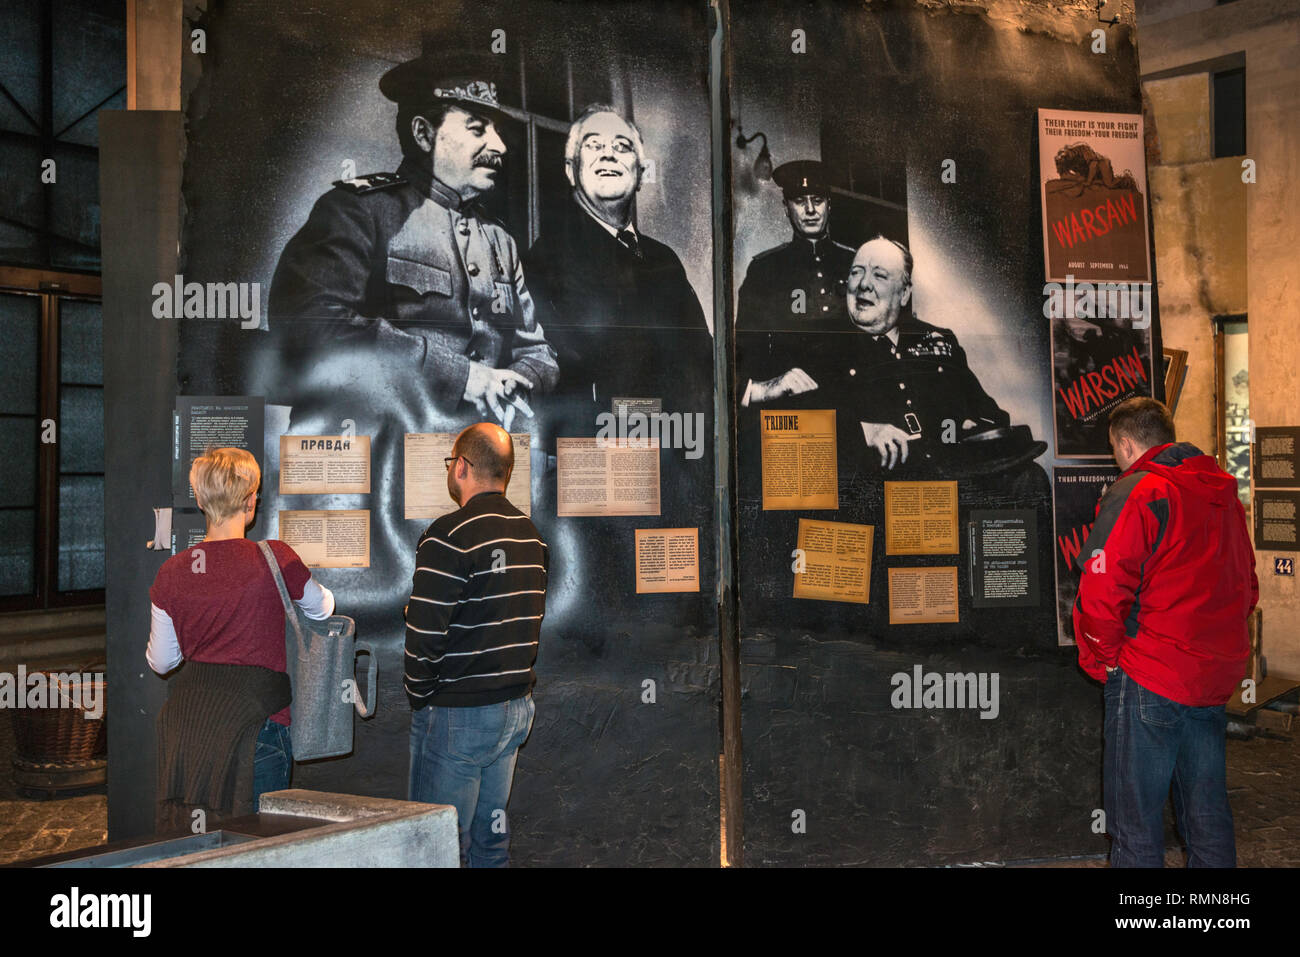 The Big Three leaders at the Tehran Conference (Roosevelt, Churchill and Stalin), photo at Warsaw Uprising Museum in Warsaw, Poland - Stock Image